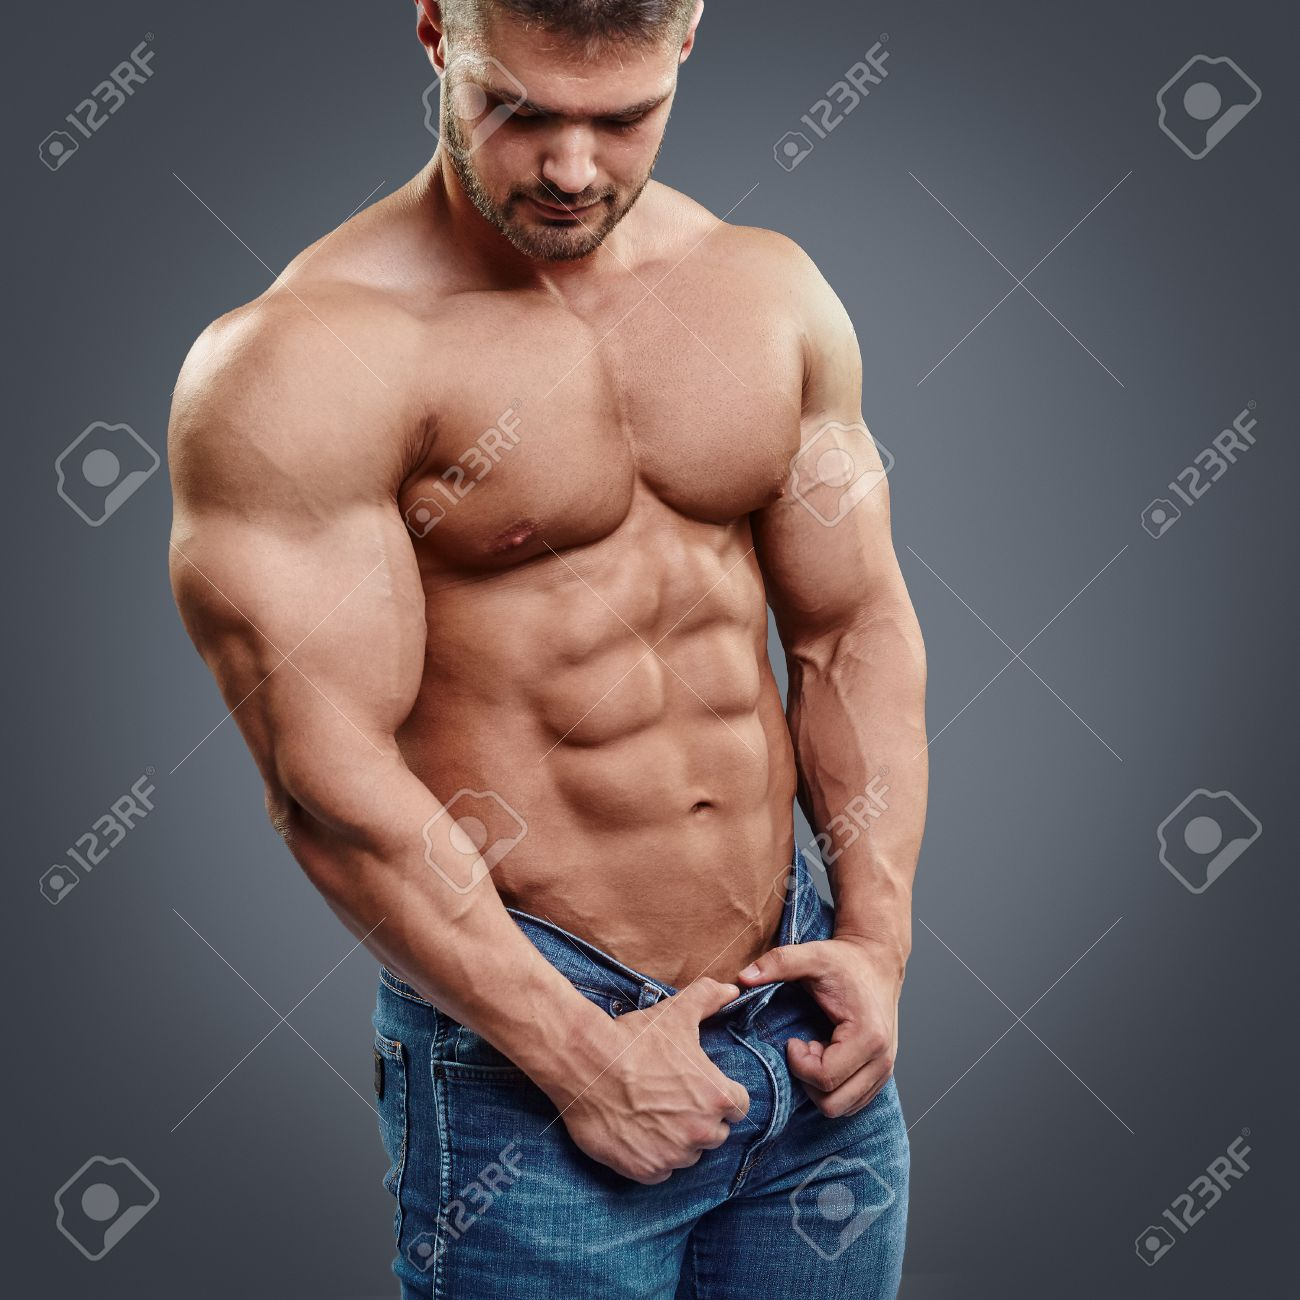 Perfect Muscular Chest And Abs Cropped Image Of Muscular Man